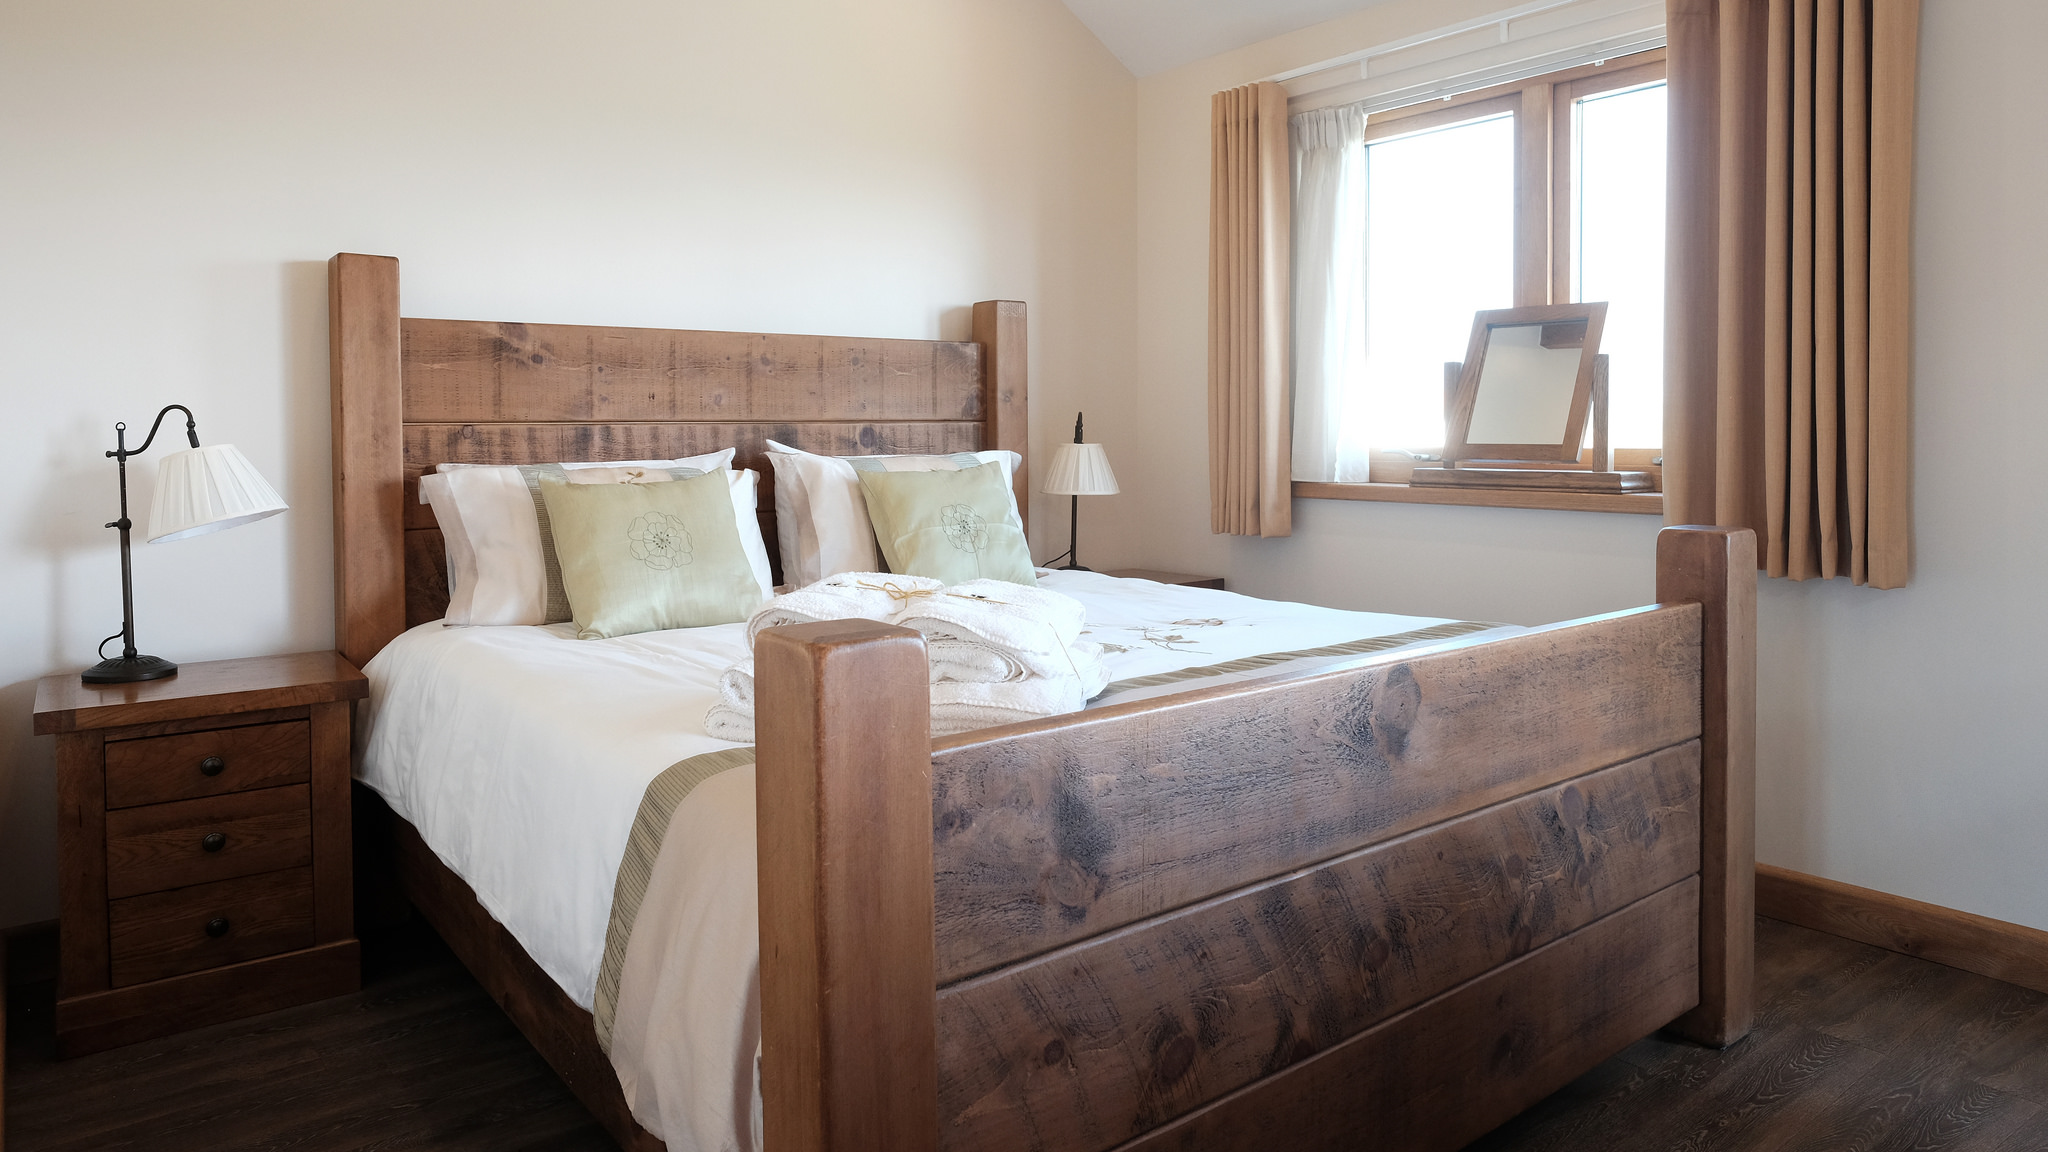 Super king size bed hand crafted from Canadian pine